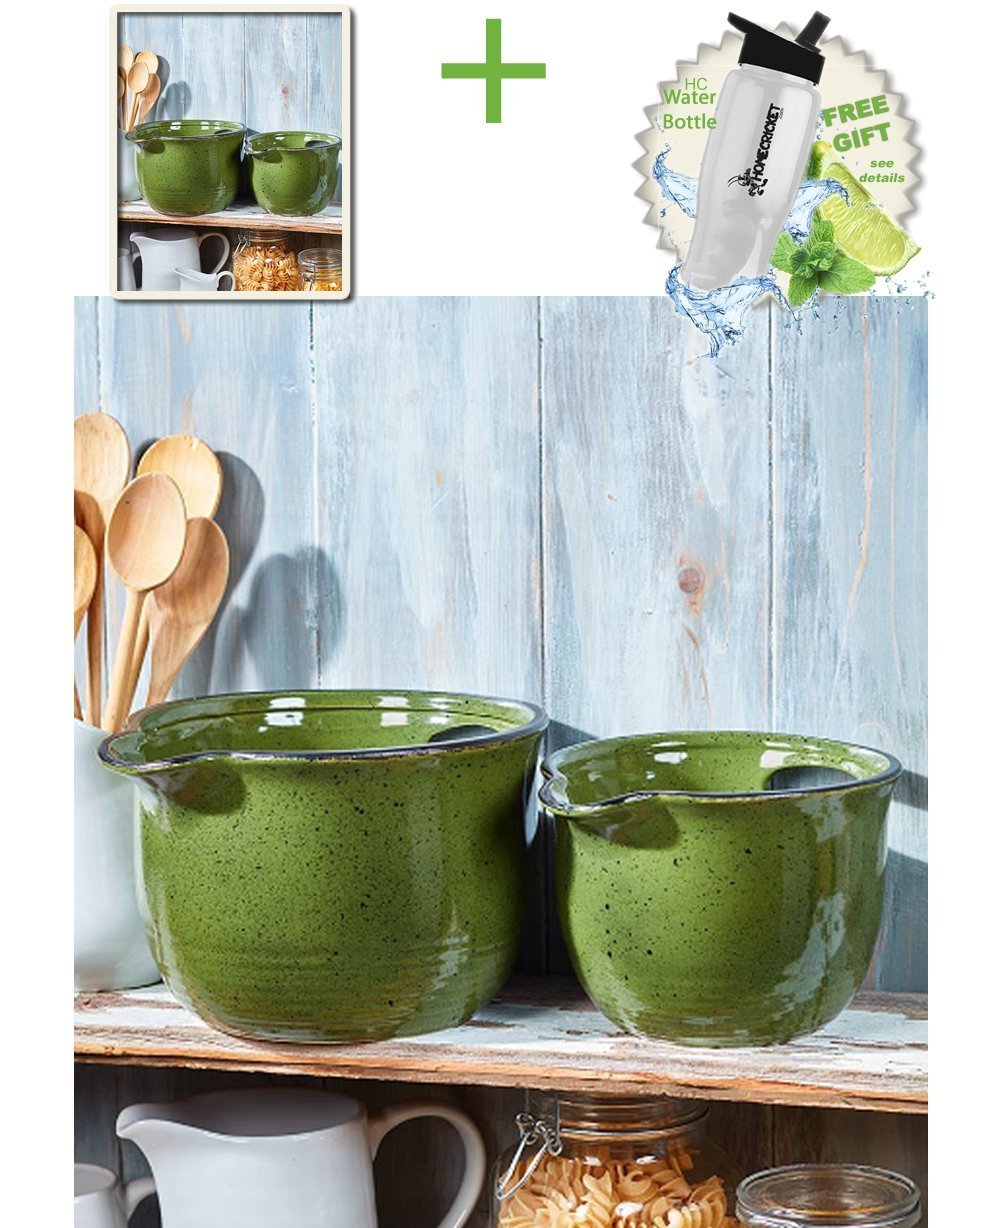 Gift Included- Country Farmhouse Kitchen Oversized Mixing Bowls Set of 2 Green + FREE Bonus Water Bottle by Home Cricket Homecricket by HomeCricket (Image #2)